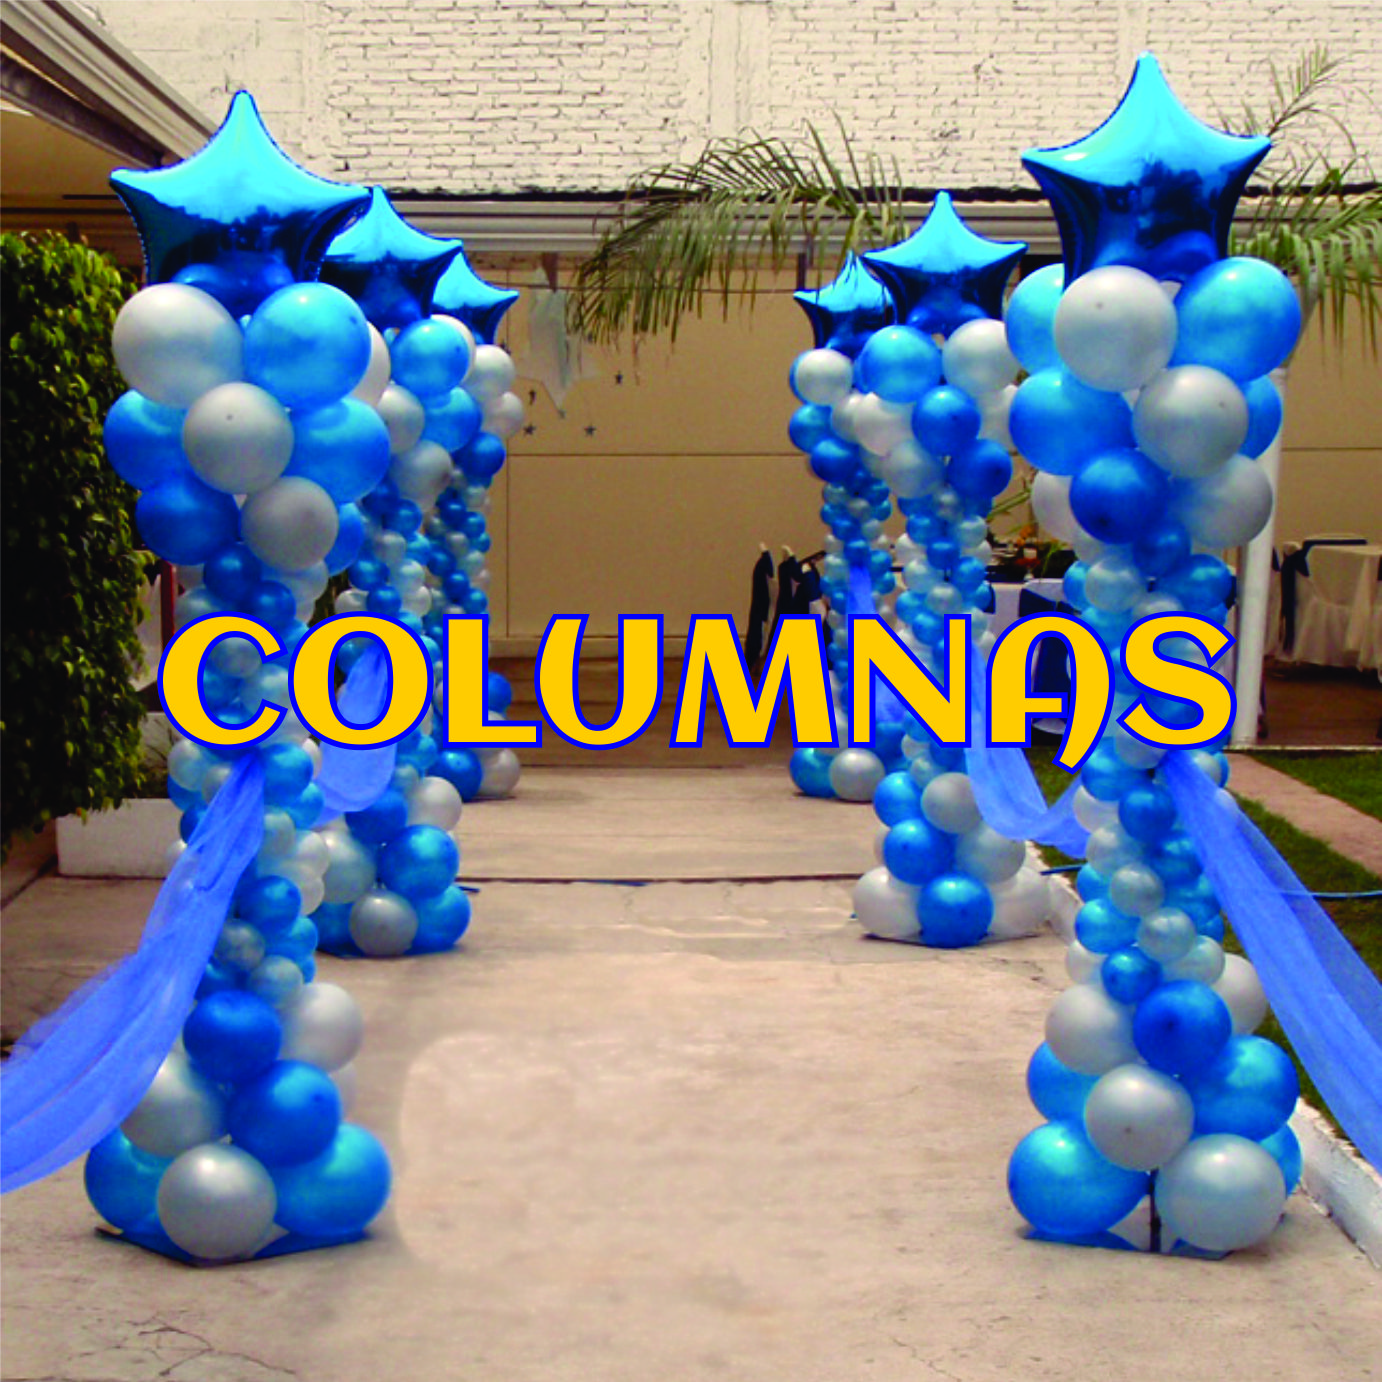 Decoraci n con globos columnas con remate de globo for Decoracion con globos